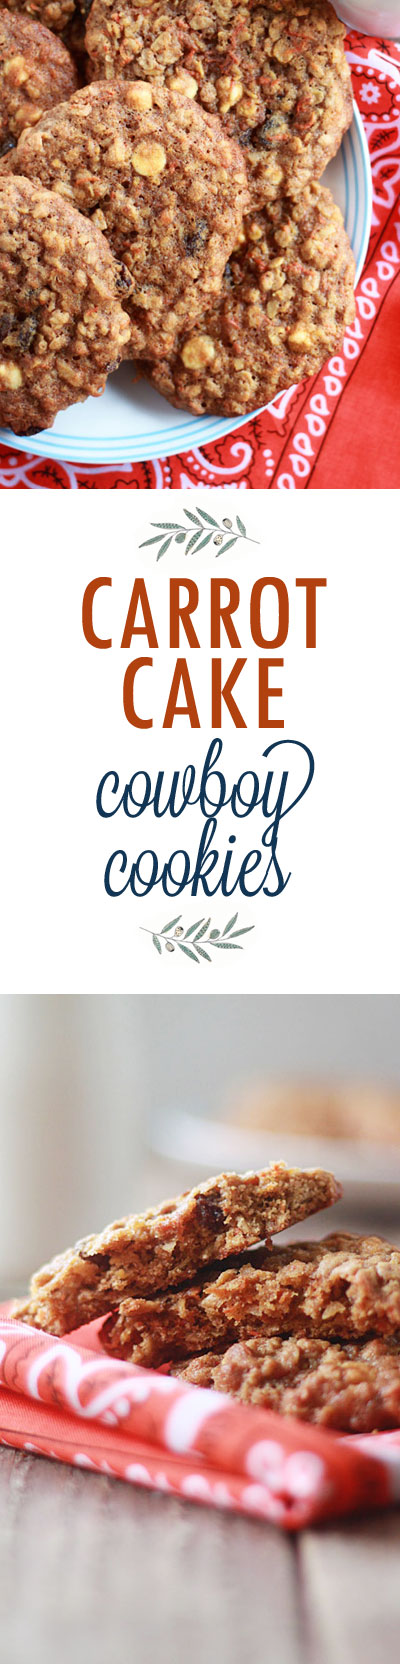 Carrot Cake Cowboy Cookies recipe - Cookies meet carrot cake in these big chewy cookies packed with goodies like shredded carrots, coconut, and white chocolate chips.